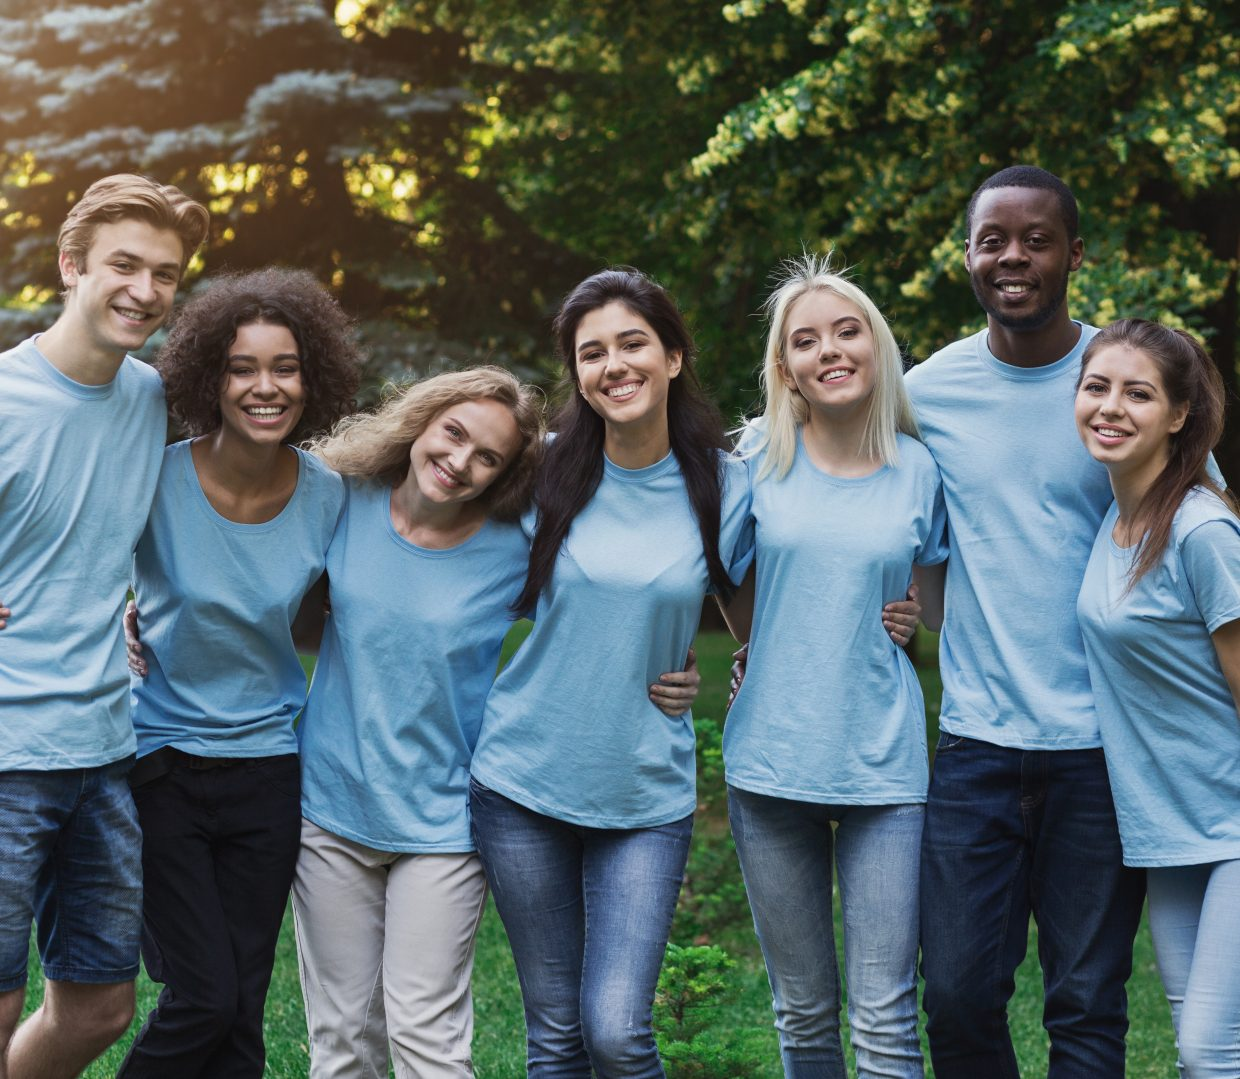 Group Of Young Volunteers Embracing At Park